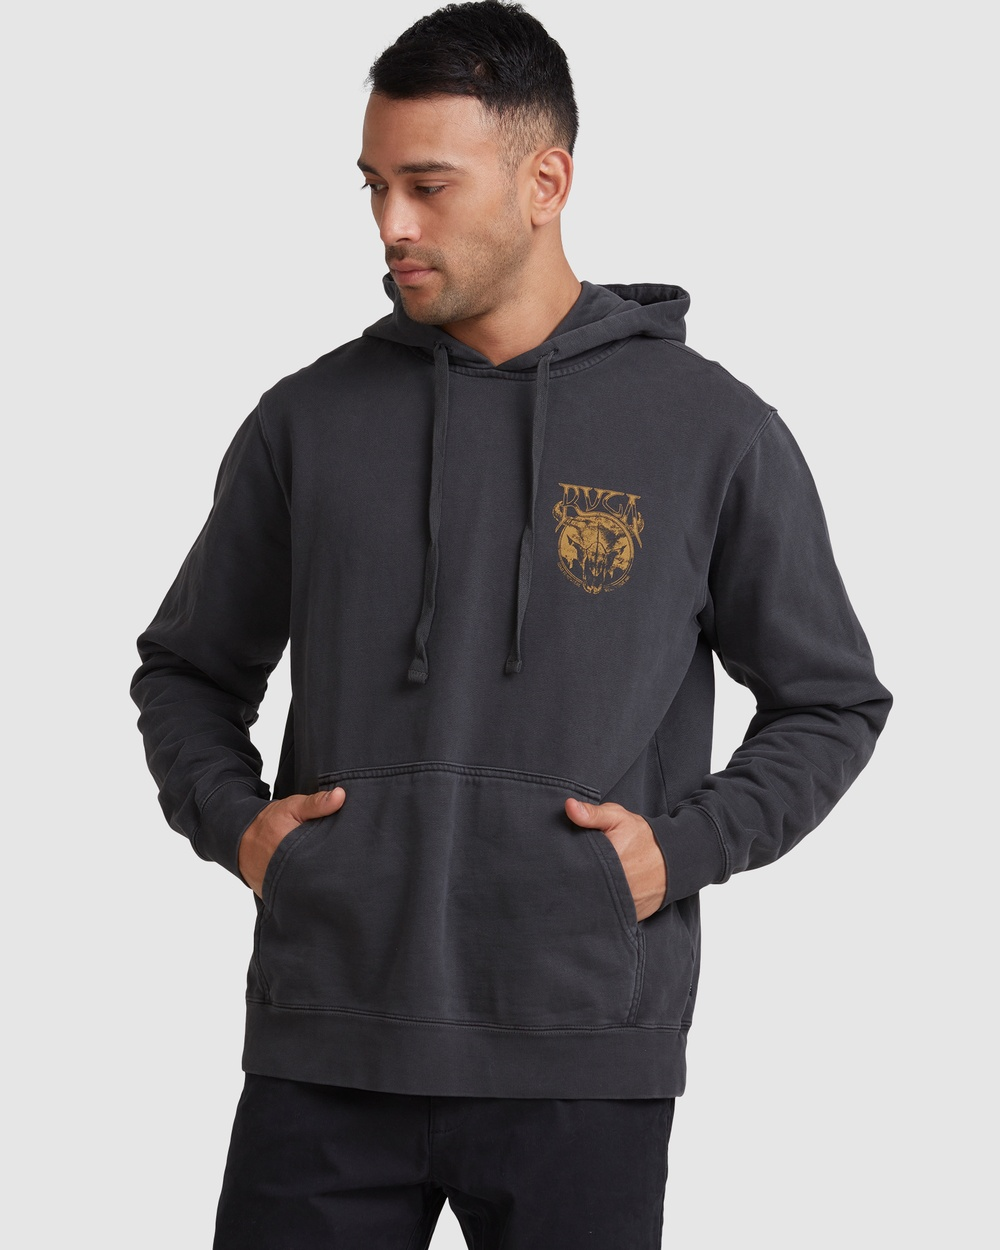 RVCA Death Valley Pullover Jumpers & Cardigans WASHED BLACK Australia